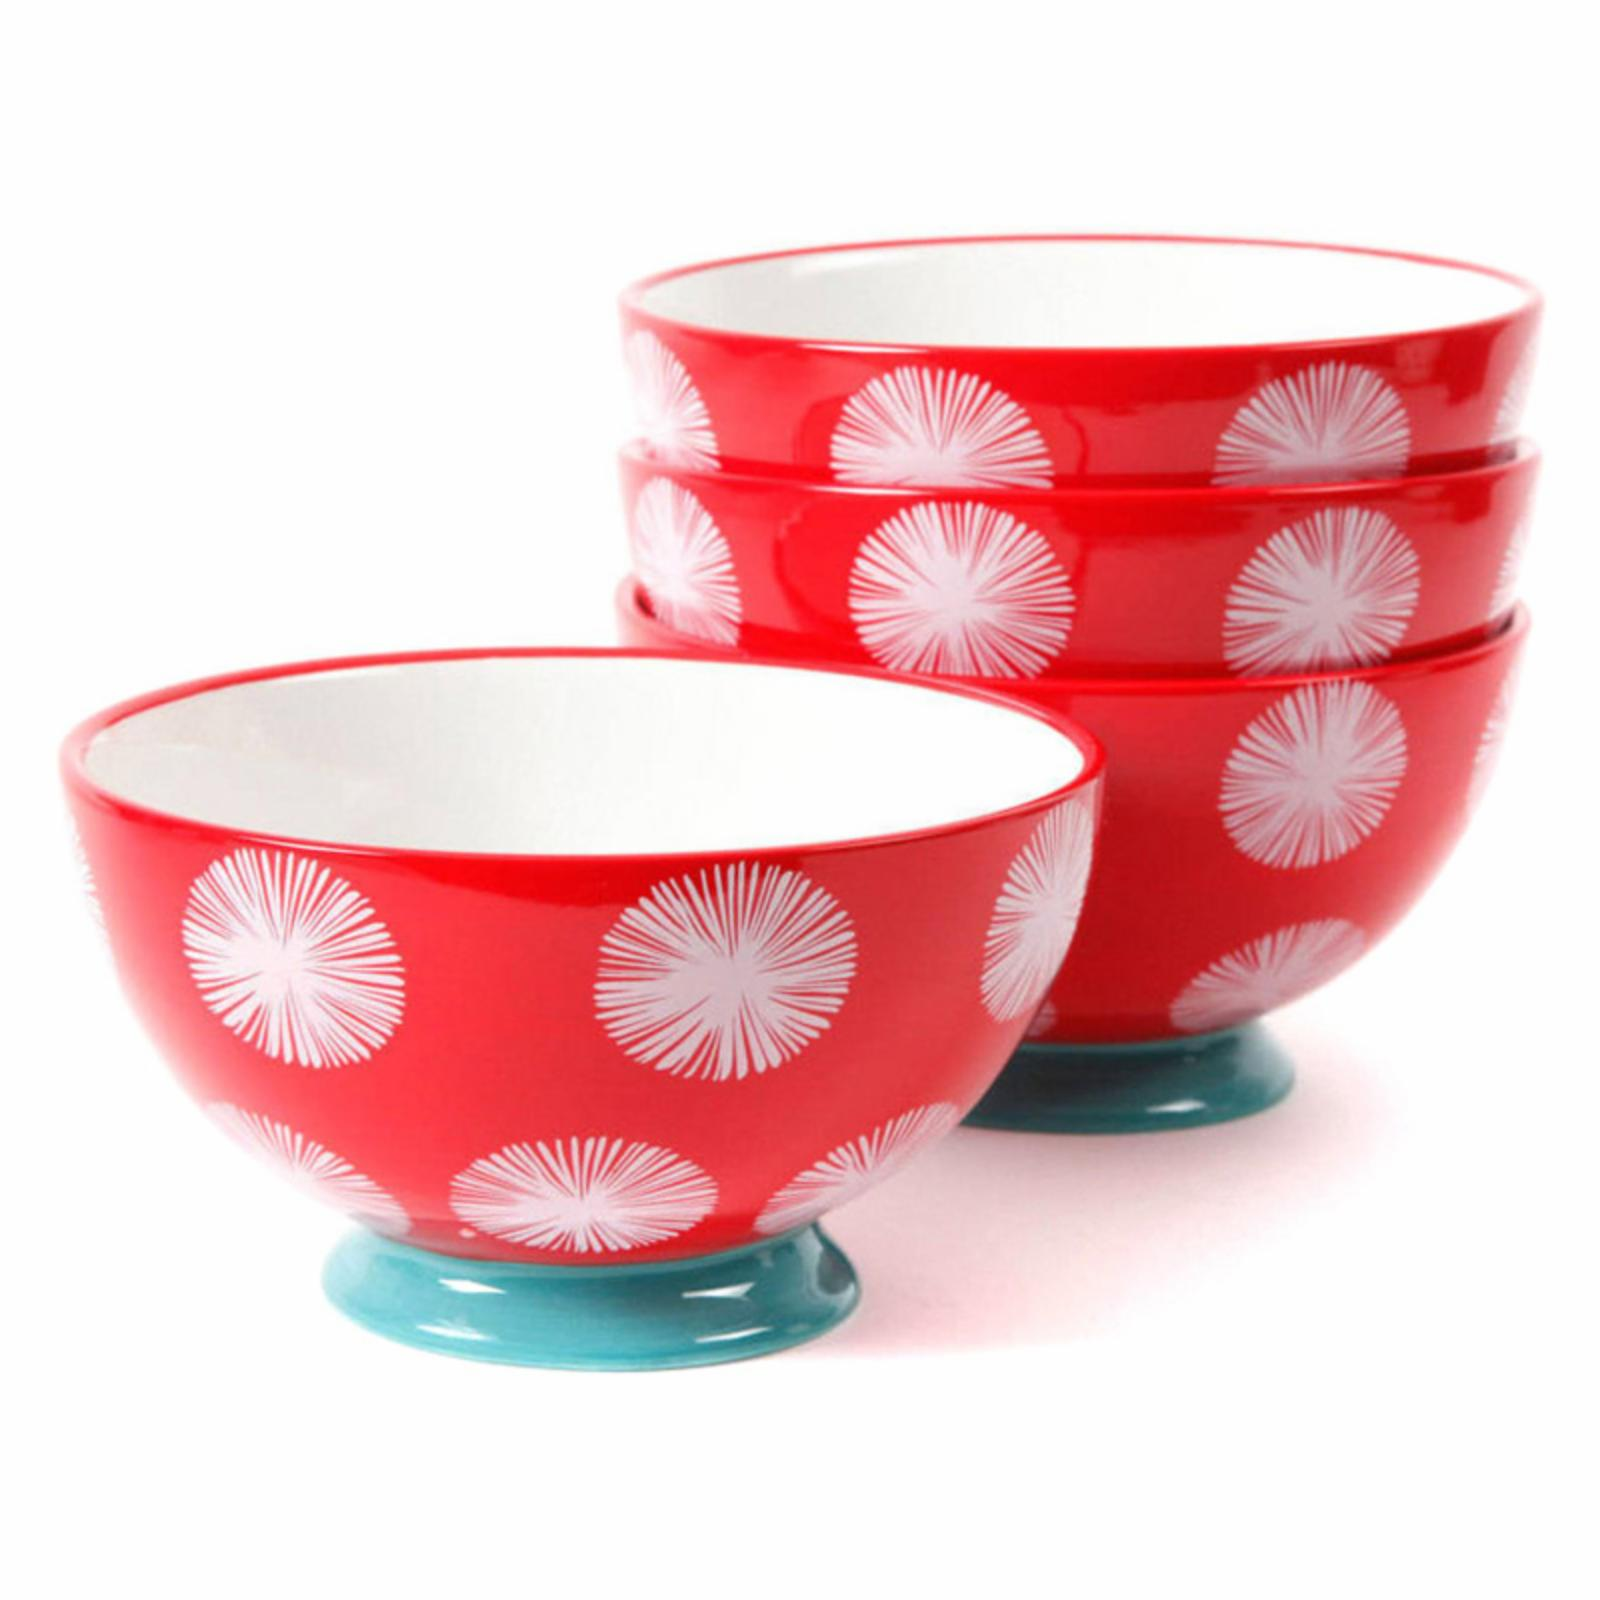 The Pioneer Woman Flea Market Red Dot Tea 6 in. Footed Bowls - Set of 4 - 96B944E8B357453FBE198153B123AD45